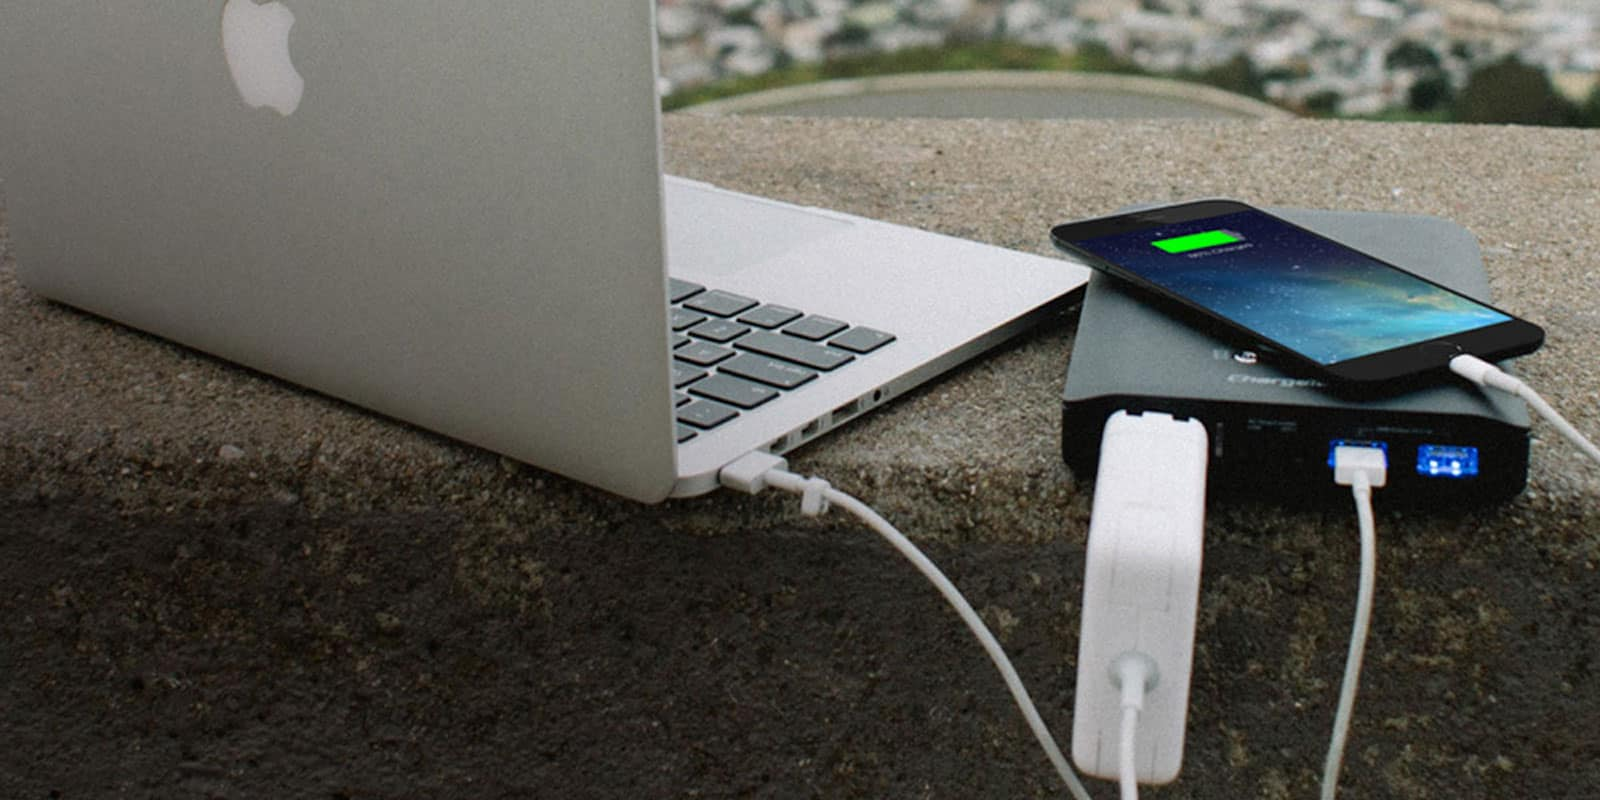 This tiny battery has a massive capacity, able to charge an iPhone 6 Plus as many as 8 times.